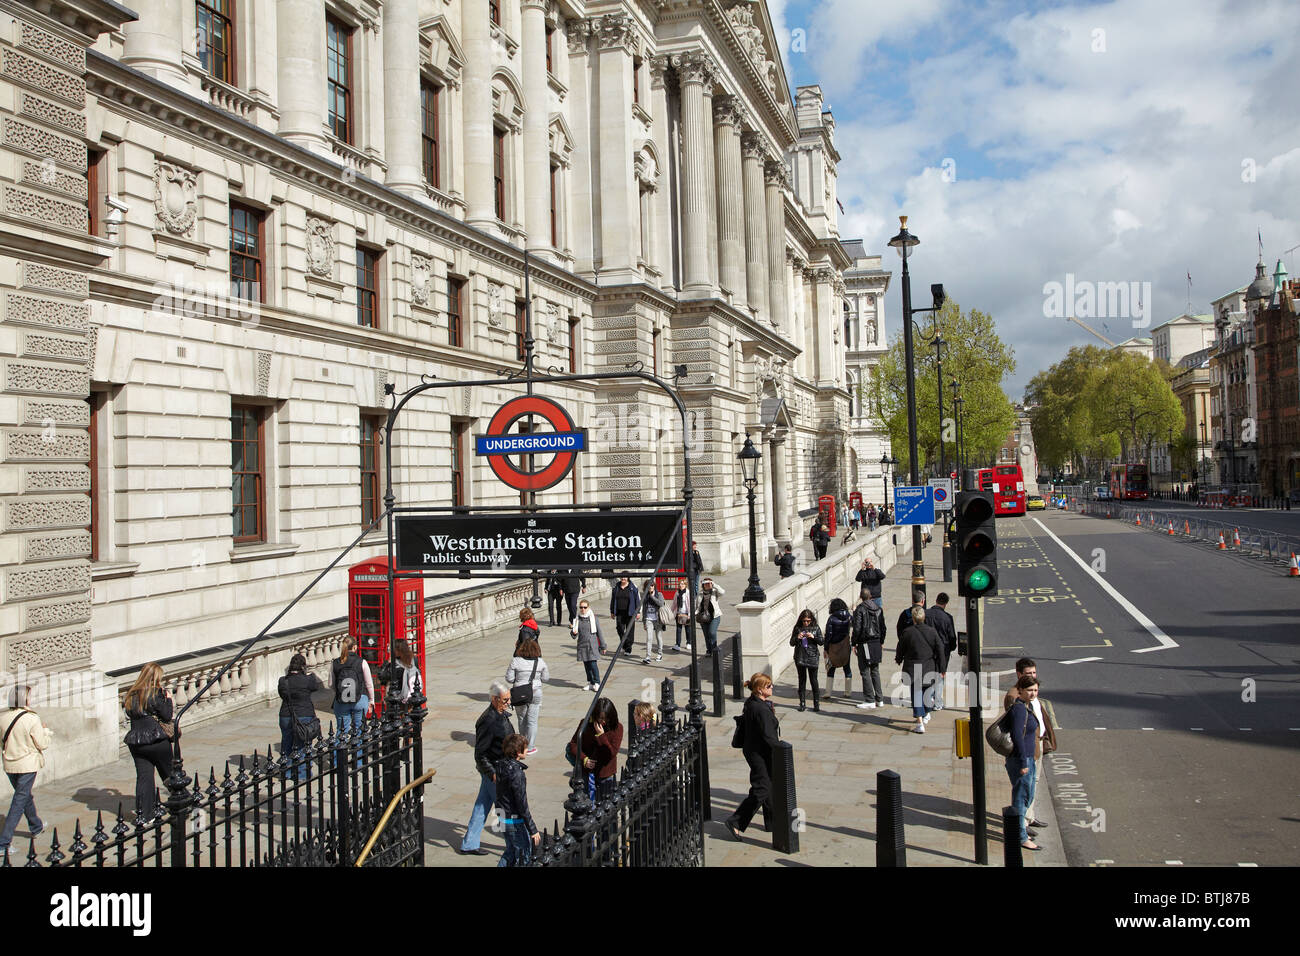 Parliament Street, and entrance to Westminster Underground Station, London, England, United Kingdom - Stock Image